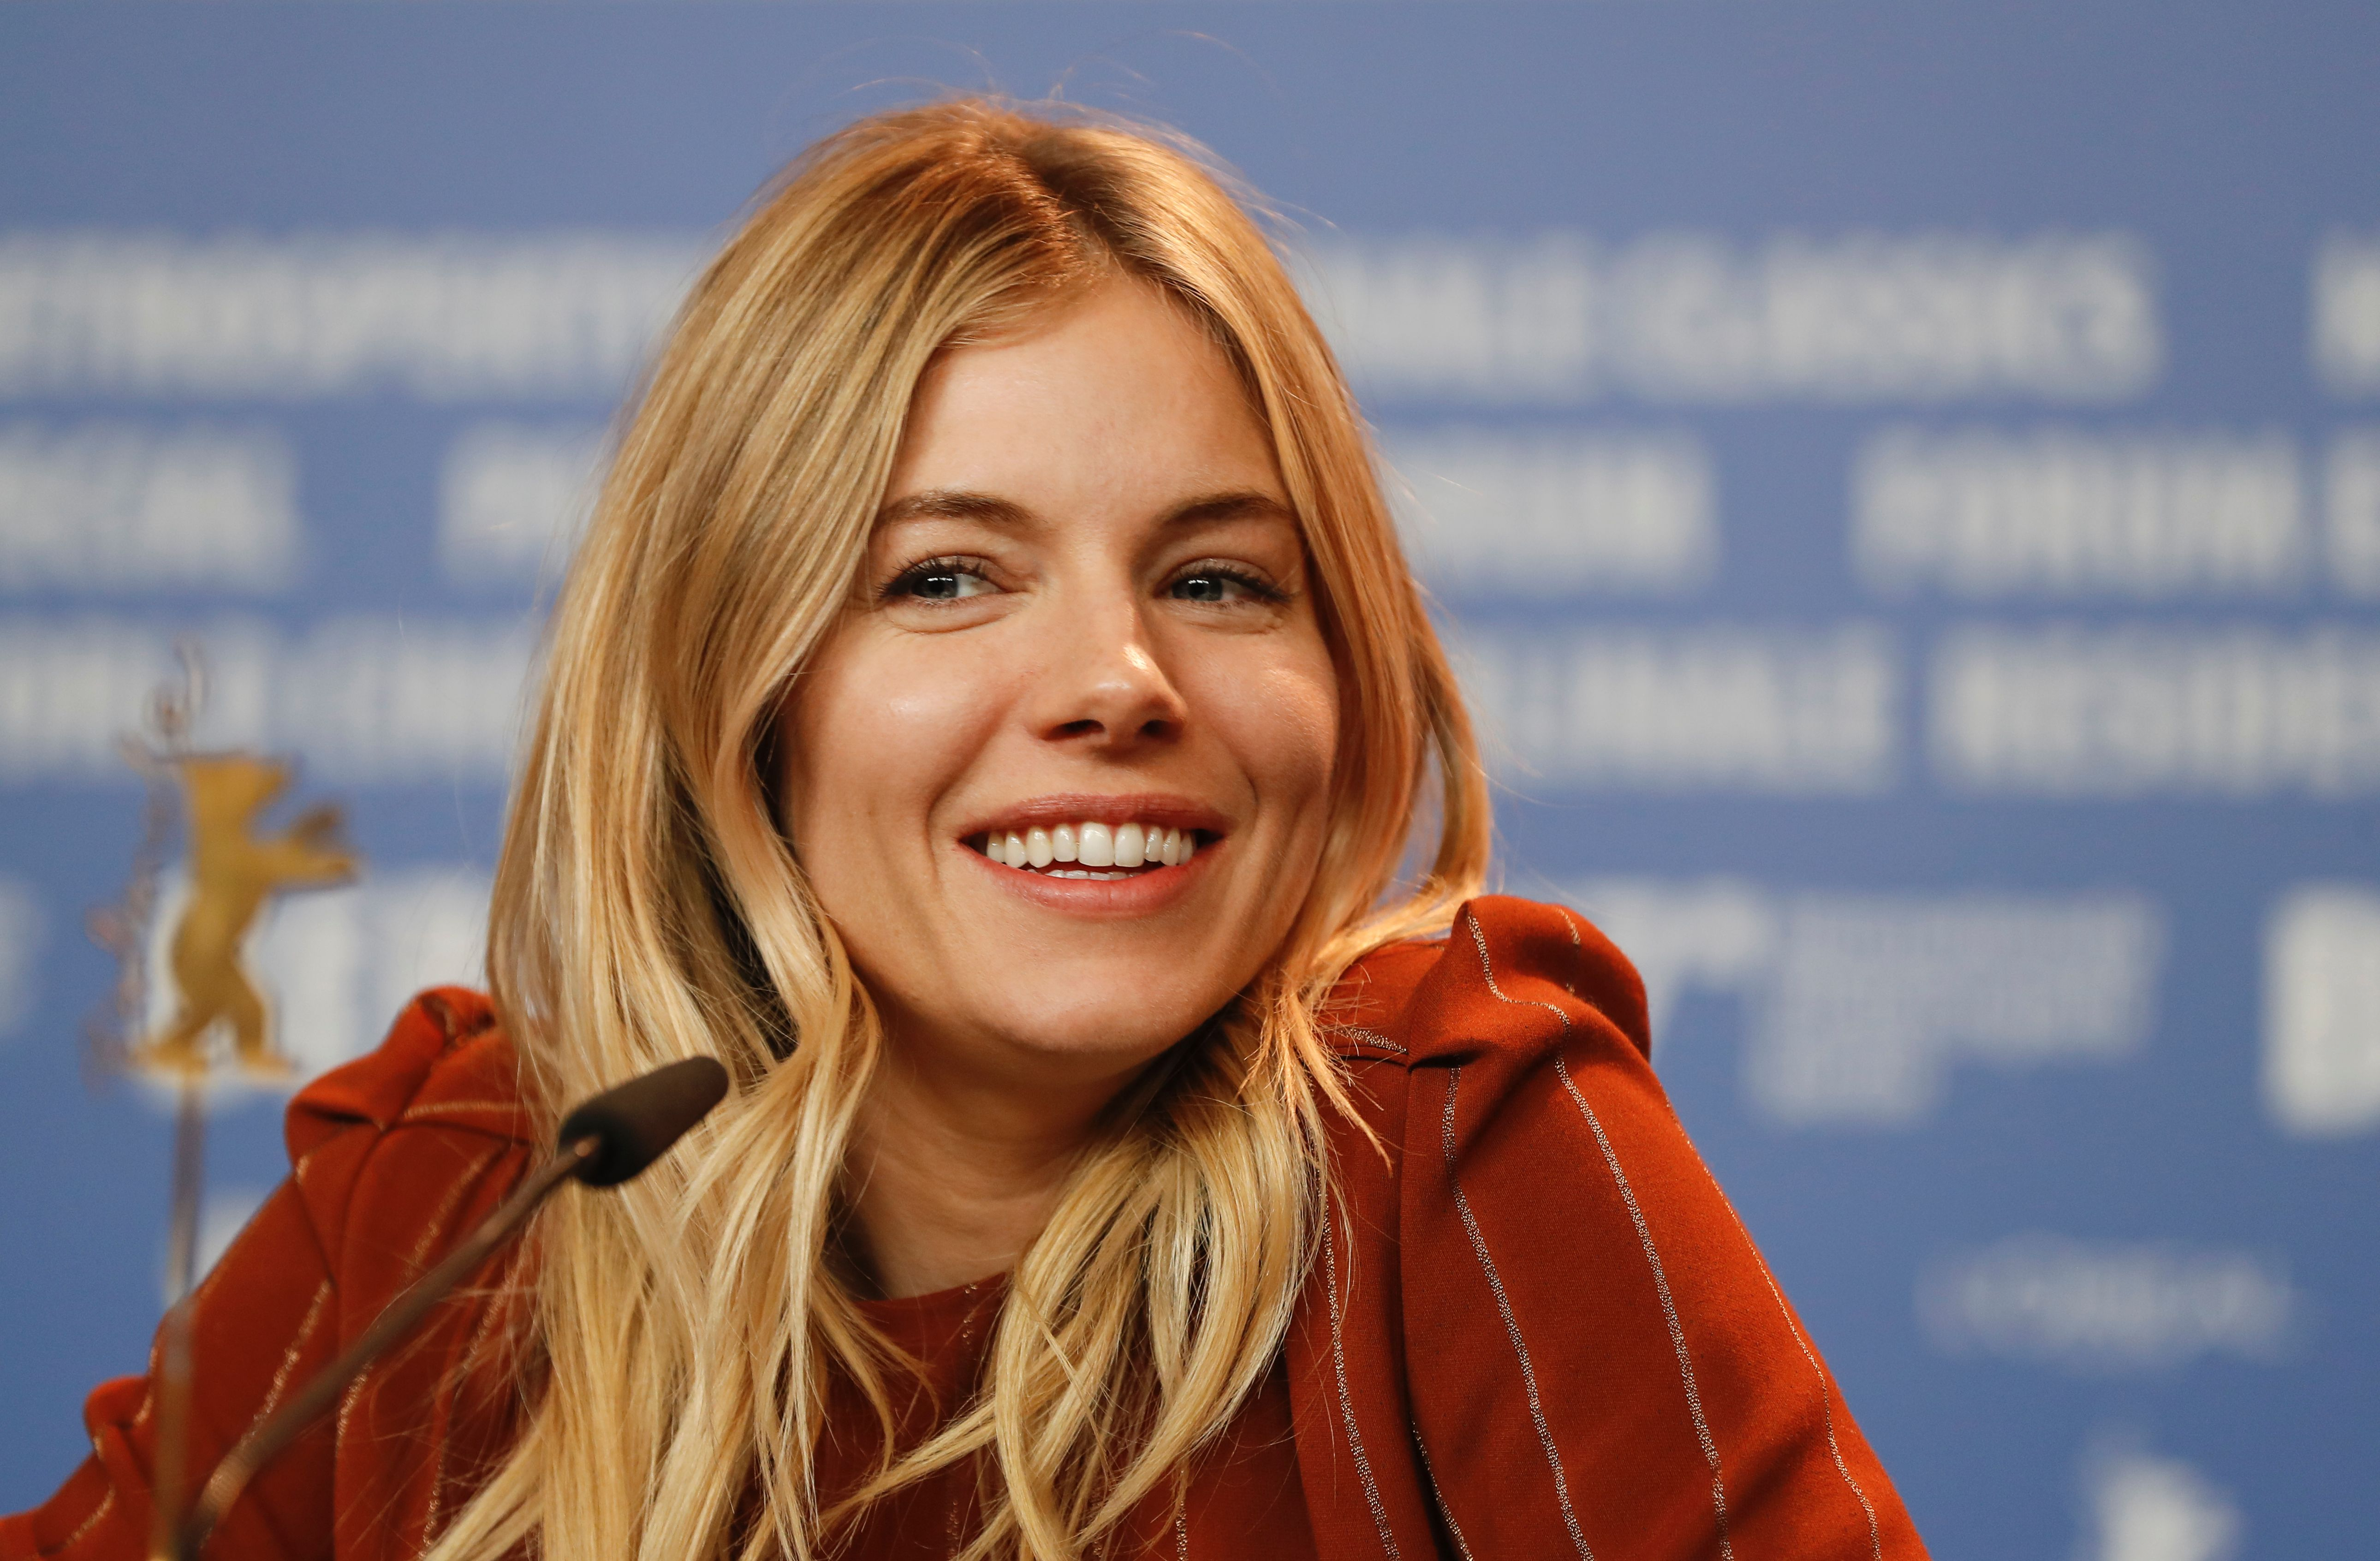 US-British actress Sienna Miller attends a press conference for the film  The Lost City of Z  presented at the Berlinale Special section of the 67th Berlinale film festival in Berlin on February 14, 2017.